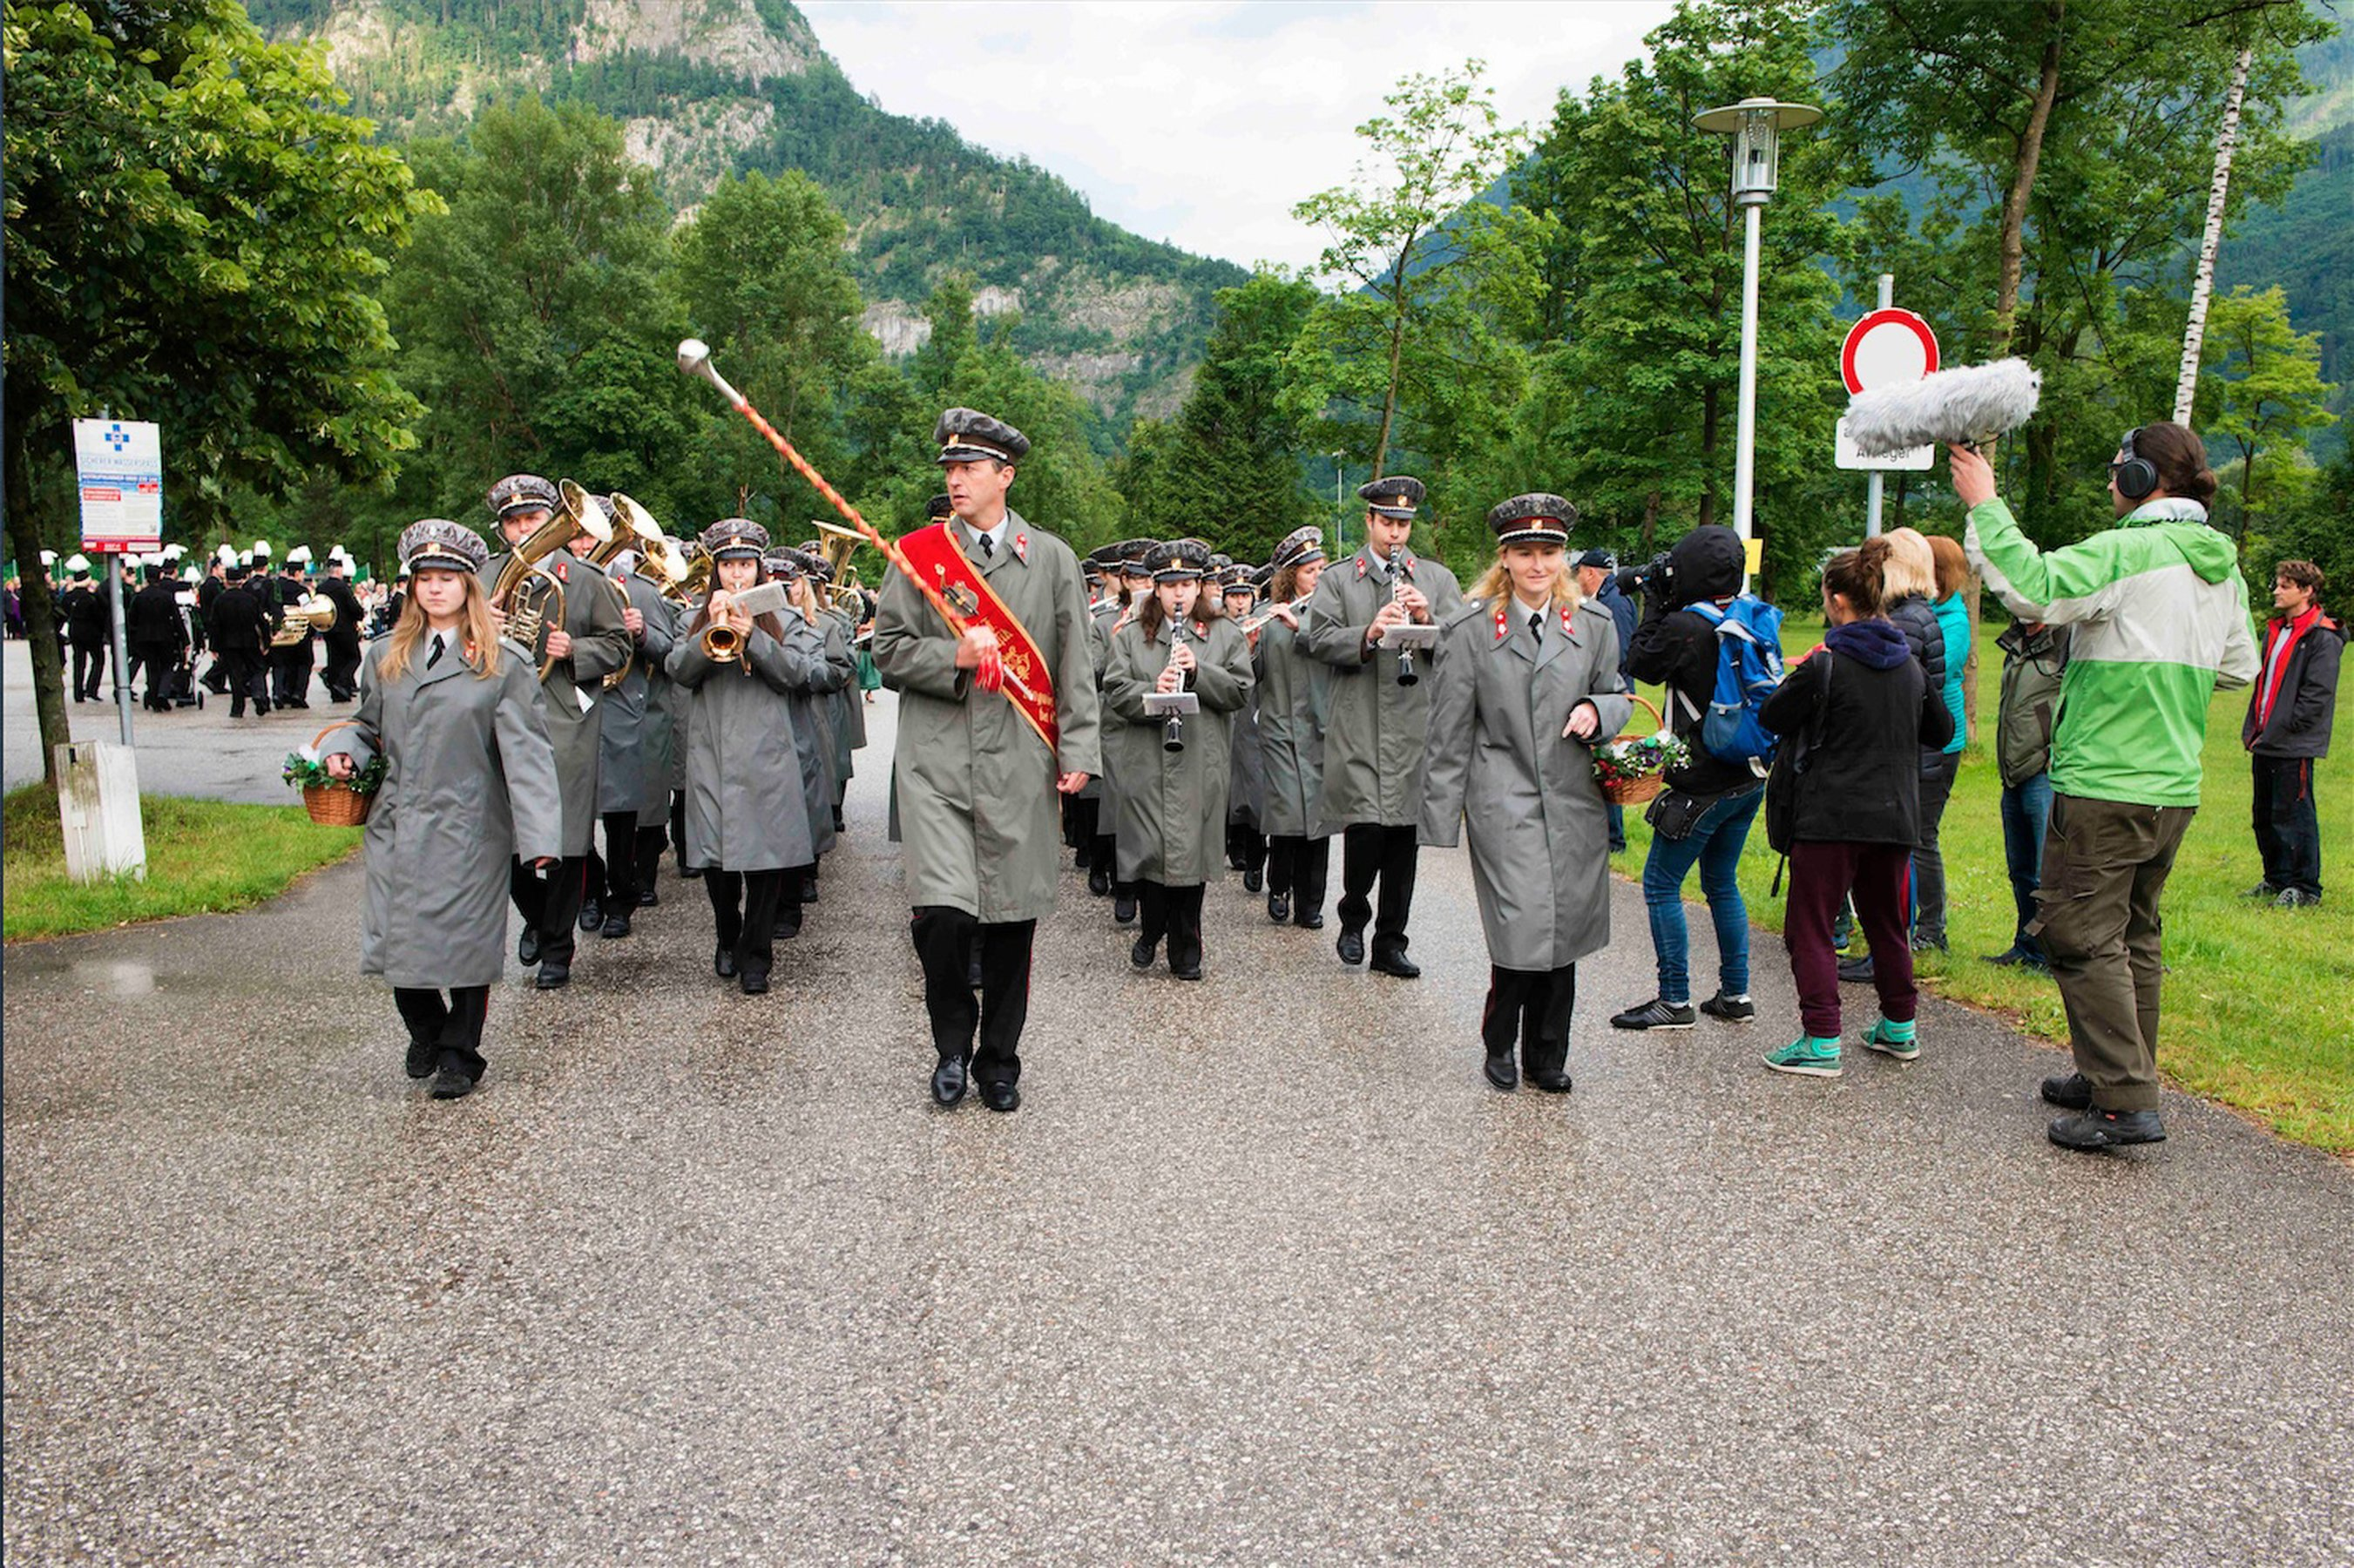 Marinella Senatore The School of Narrative Dance (Die Große Parade Public Parade, Ebensee), 2015 Fine Art Print on Hahnemühle paper, framed 80 x 105 cm